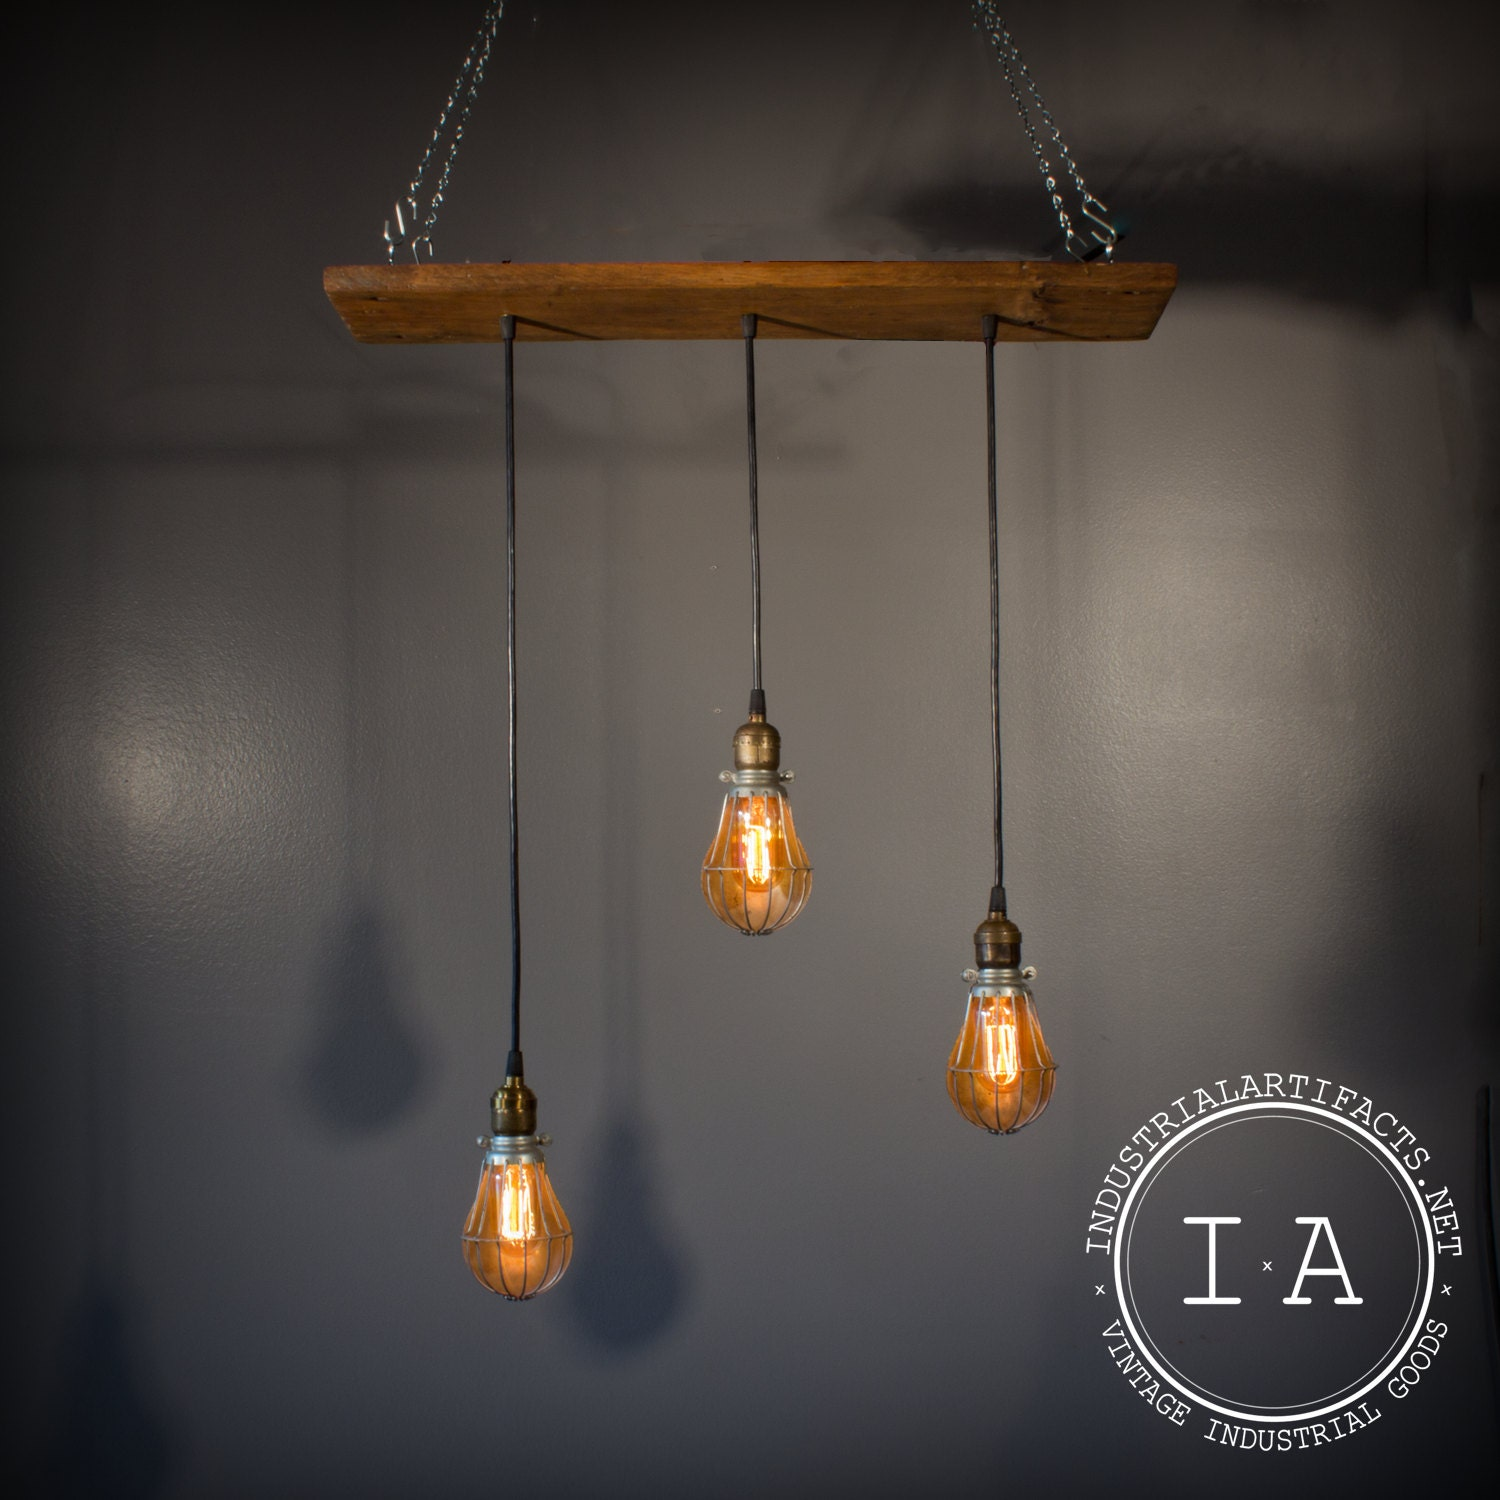 Just Reduced Rustic Handmade 3 Bulb Hanging Light Fixture Or: Vintage Industrial Pendant Lamp Chandelier Reclaimed Barn Wood